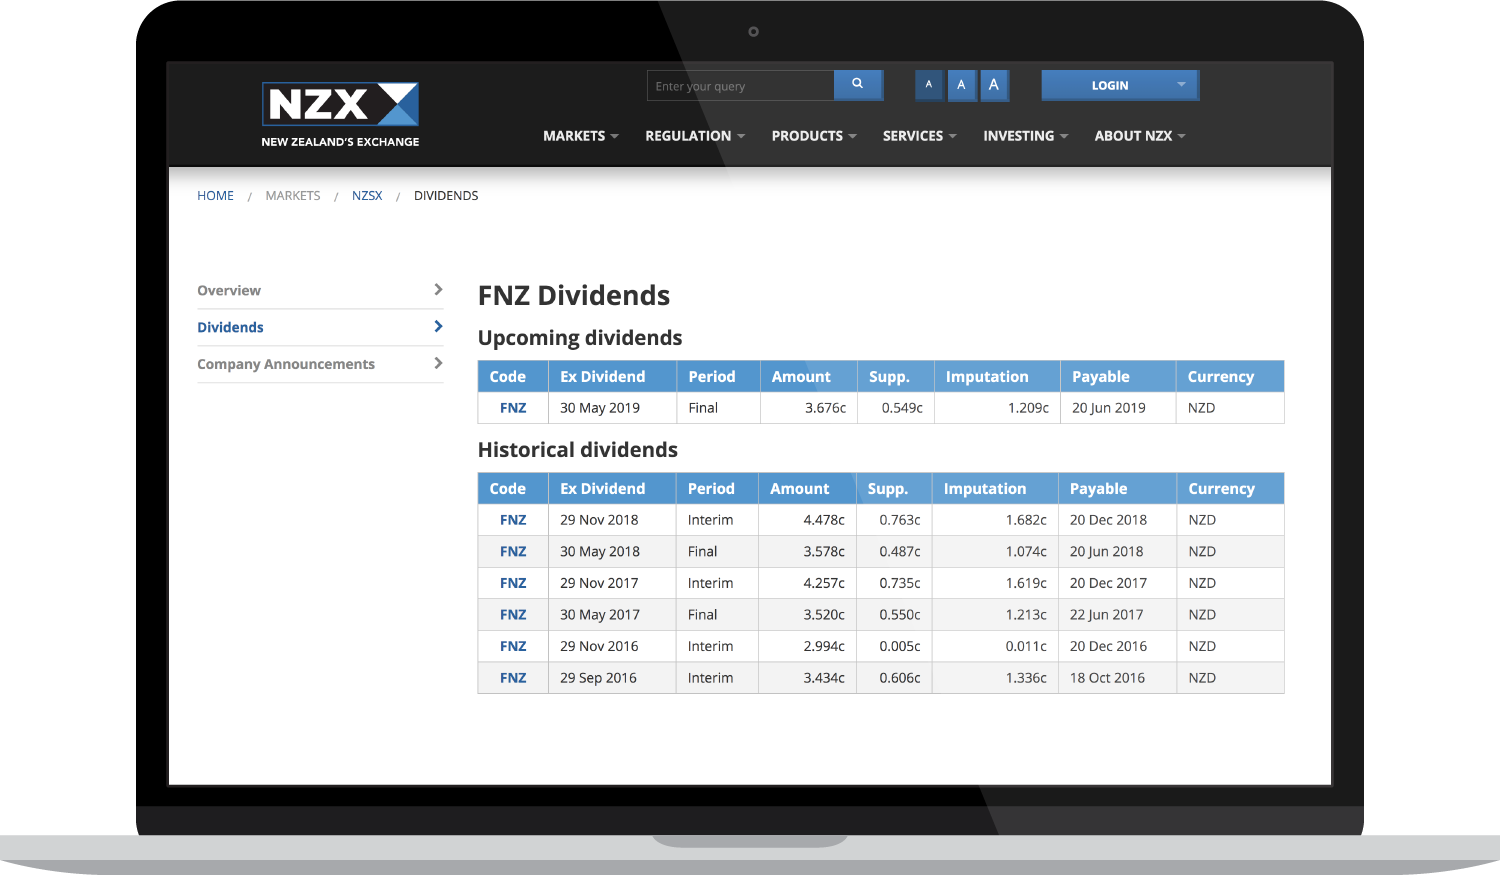 From the NZX - FNZ Dividends - Upcoming dividends and Historical dividends